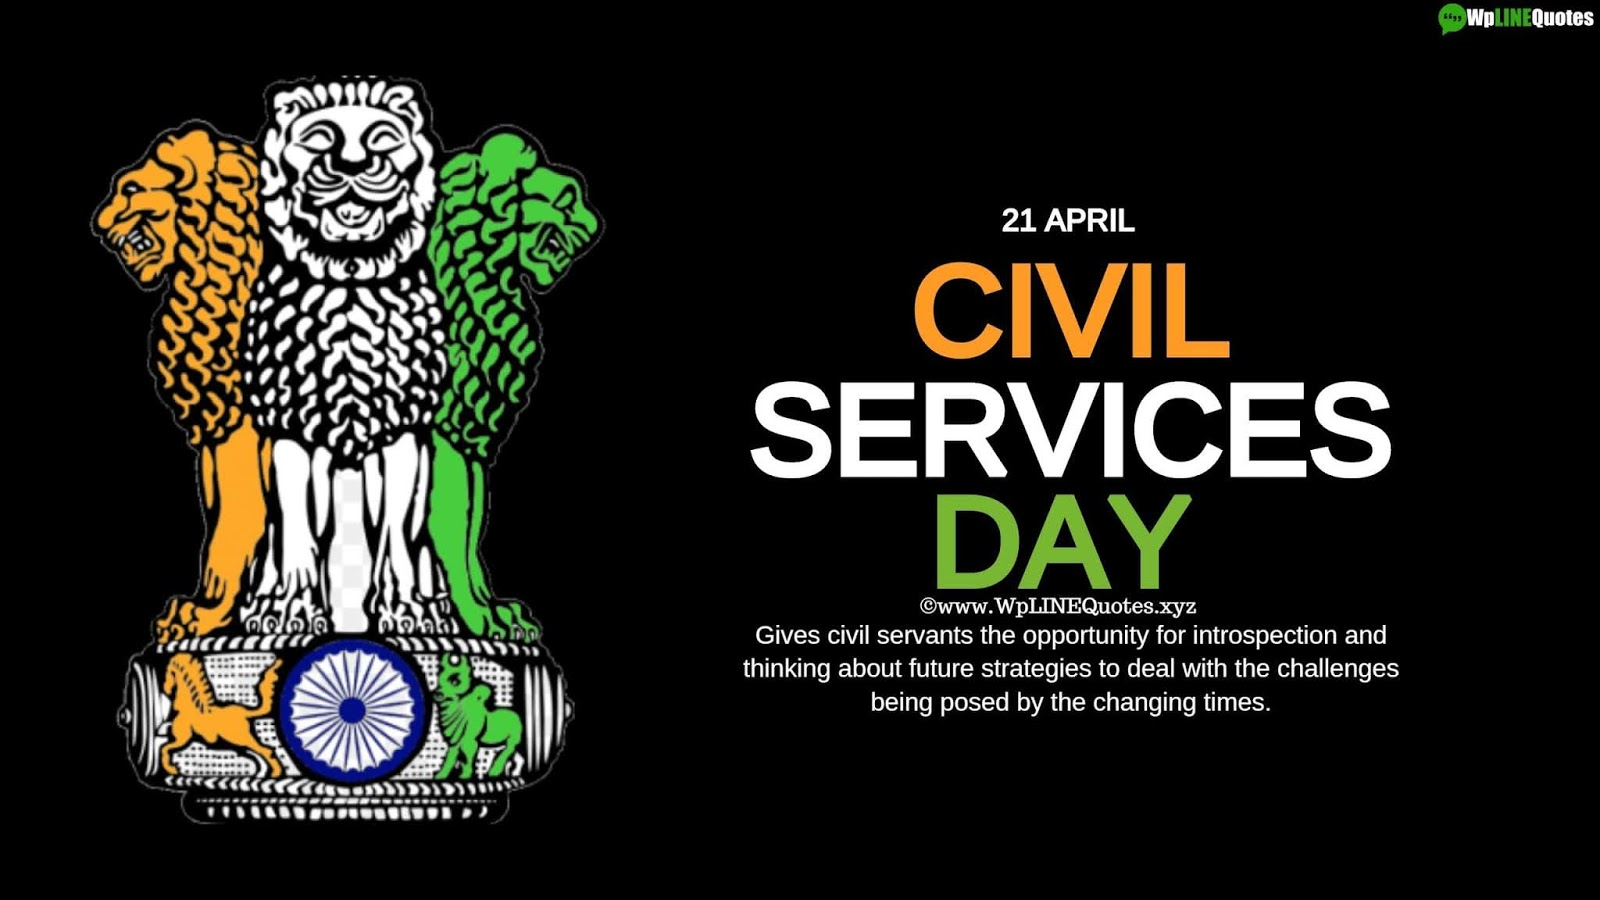 Civil Services Day Quotes, Wishes, History, Facts, Images